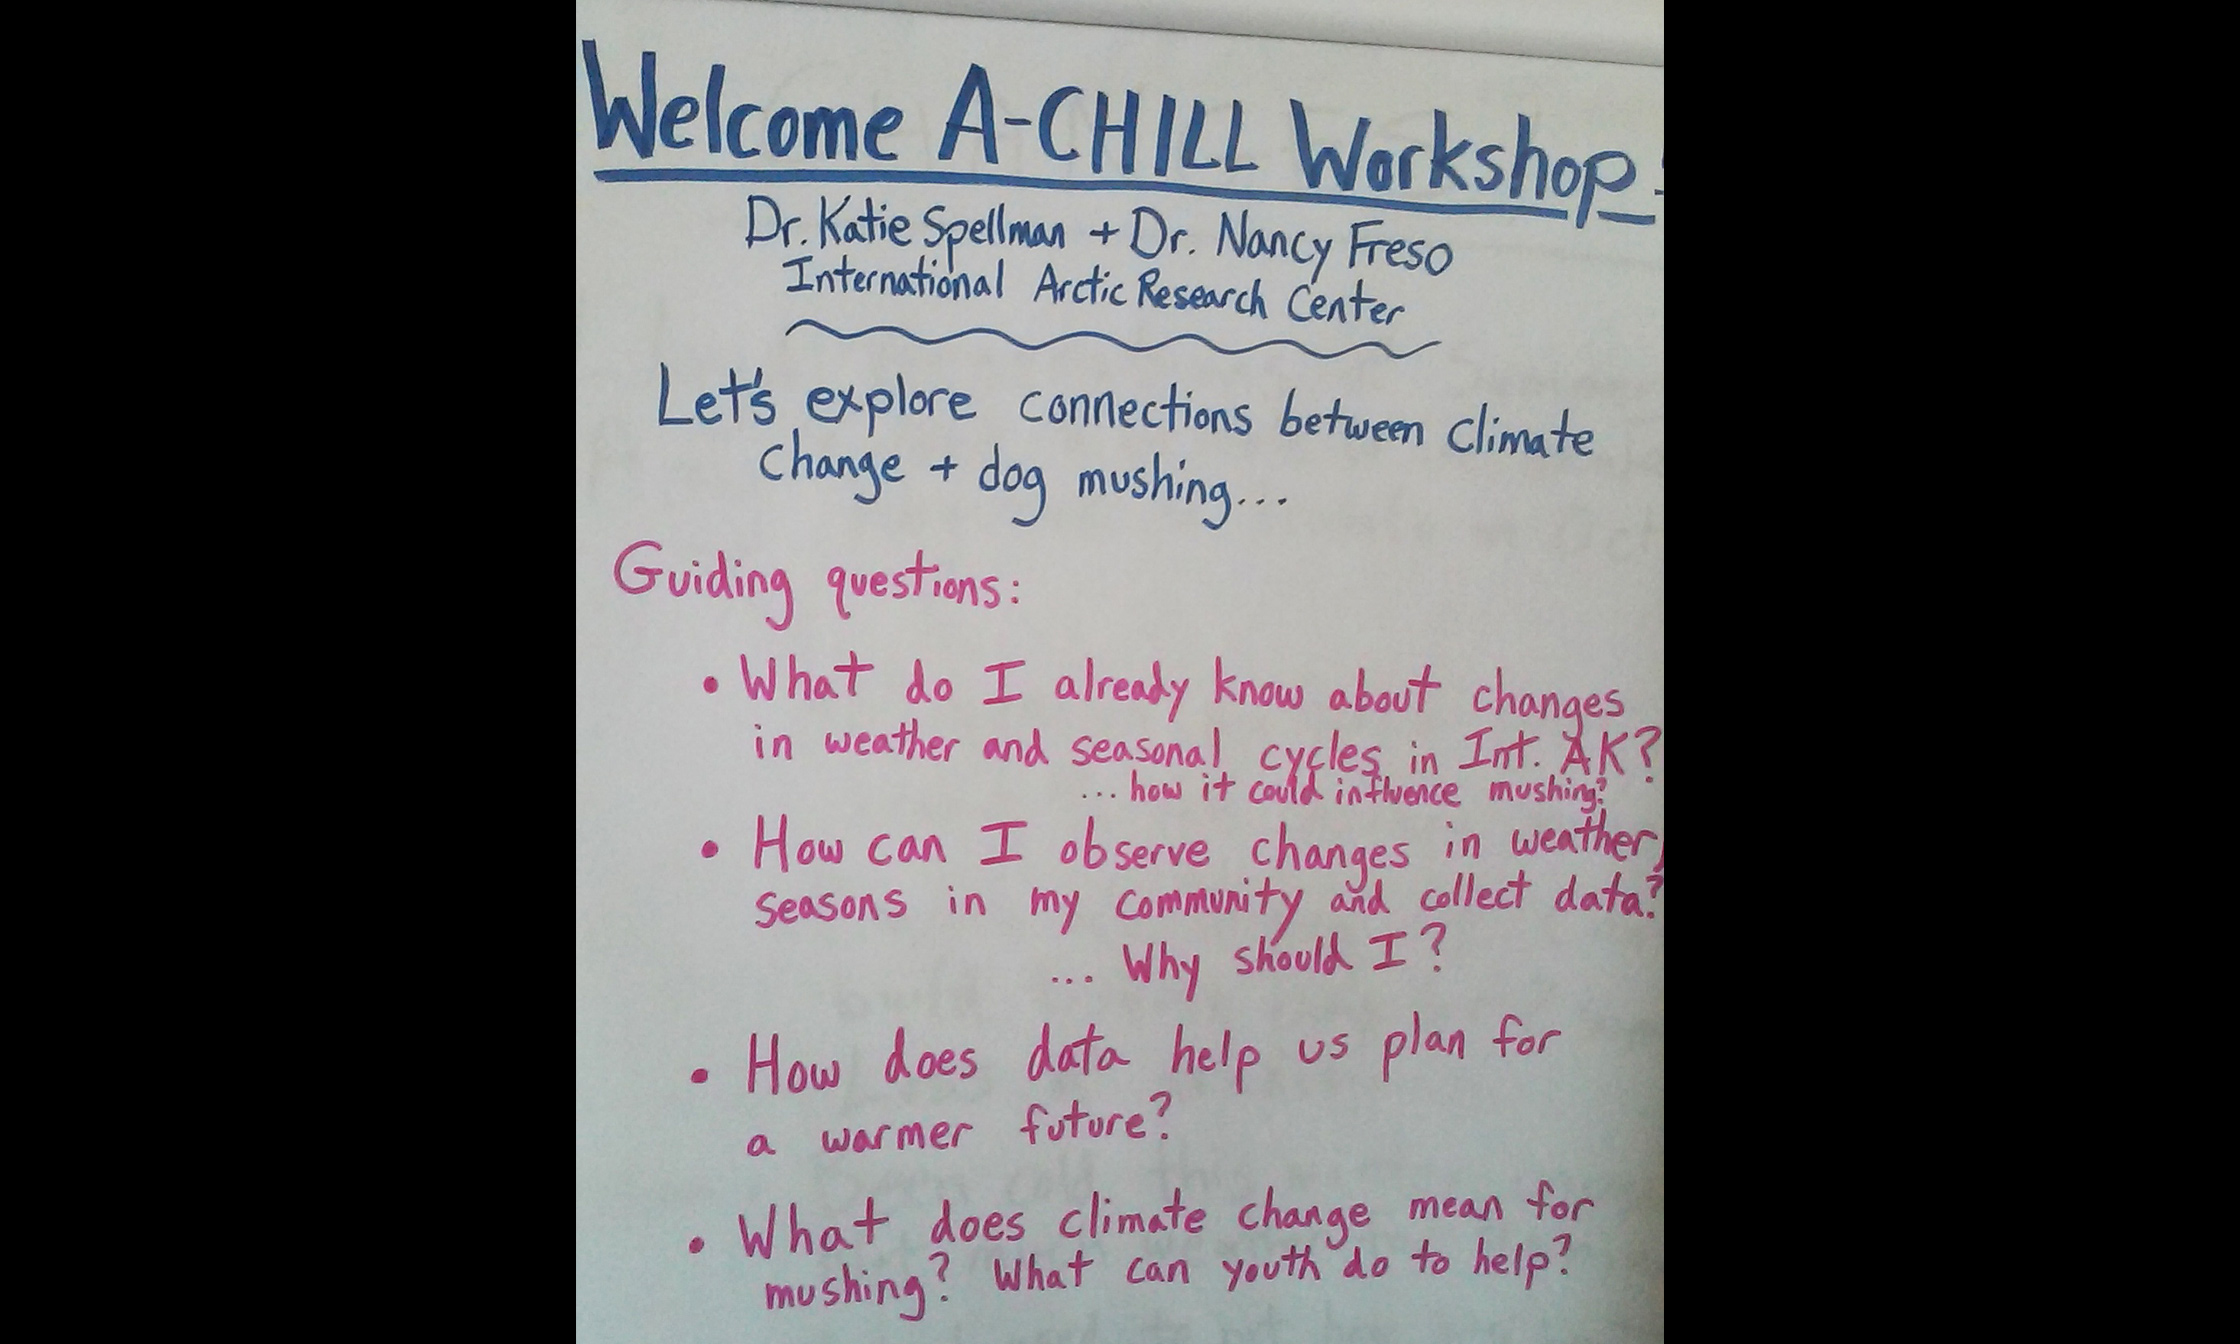 Guiding questions on climate changes